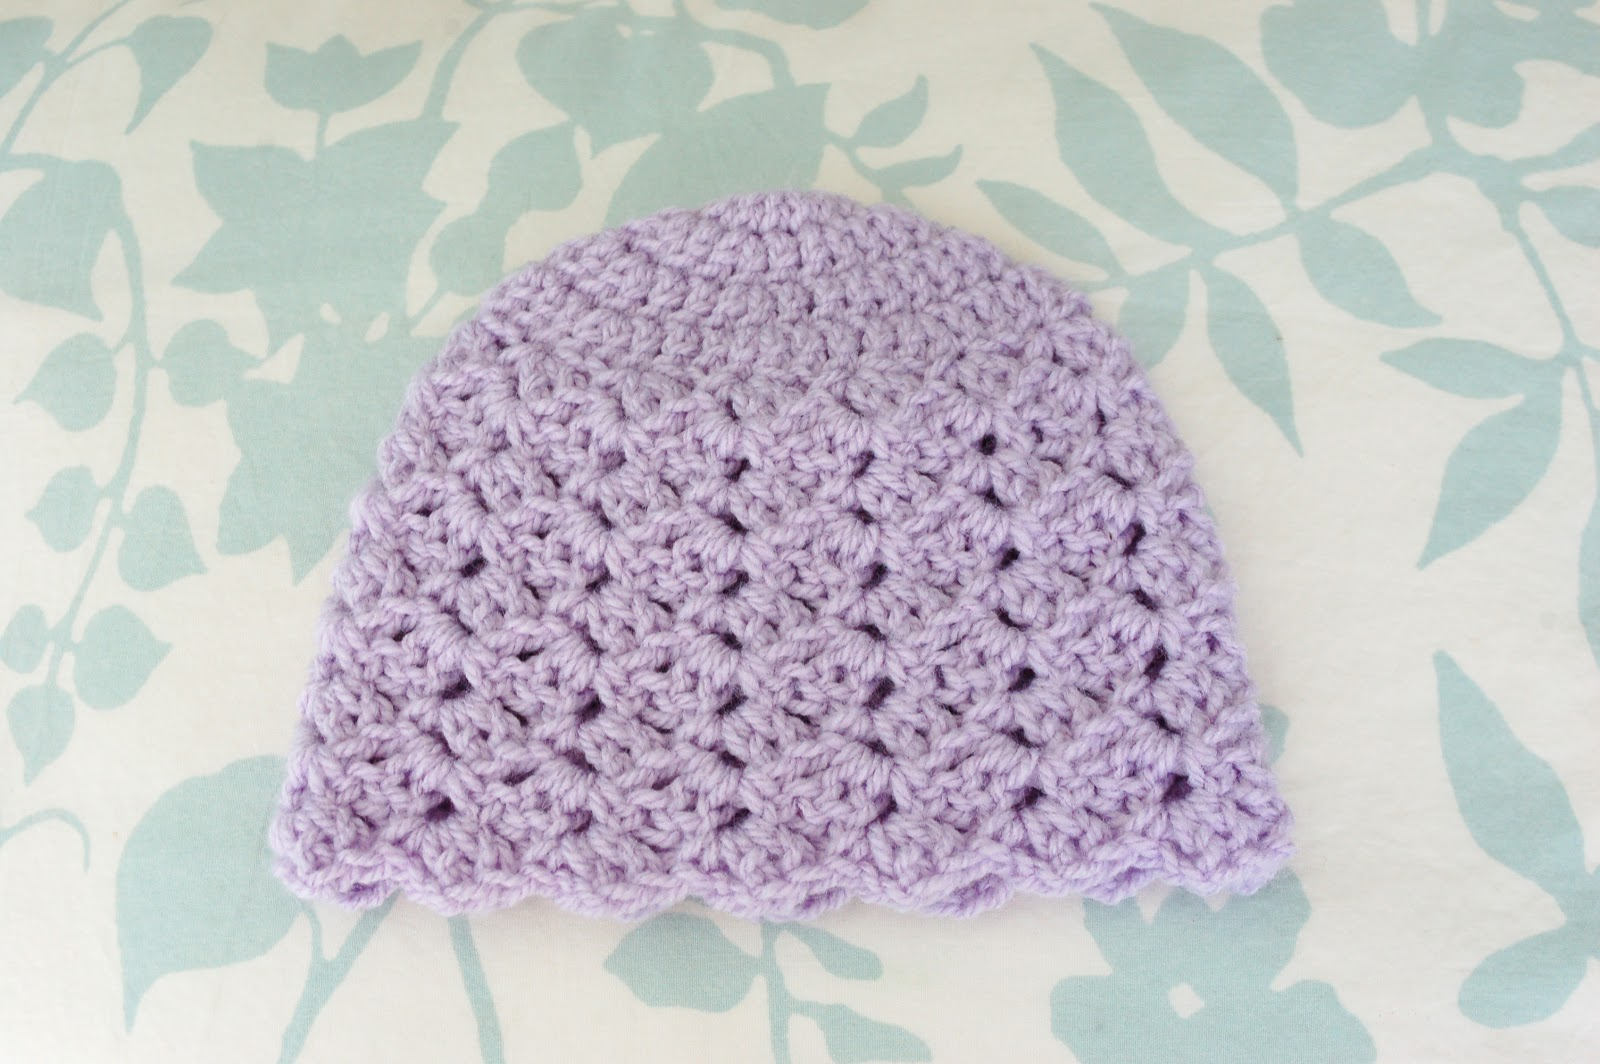 Crocheting Newborn Baby Hat : dc double crochet sc single crochet sl st slip stitch